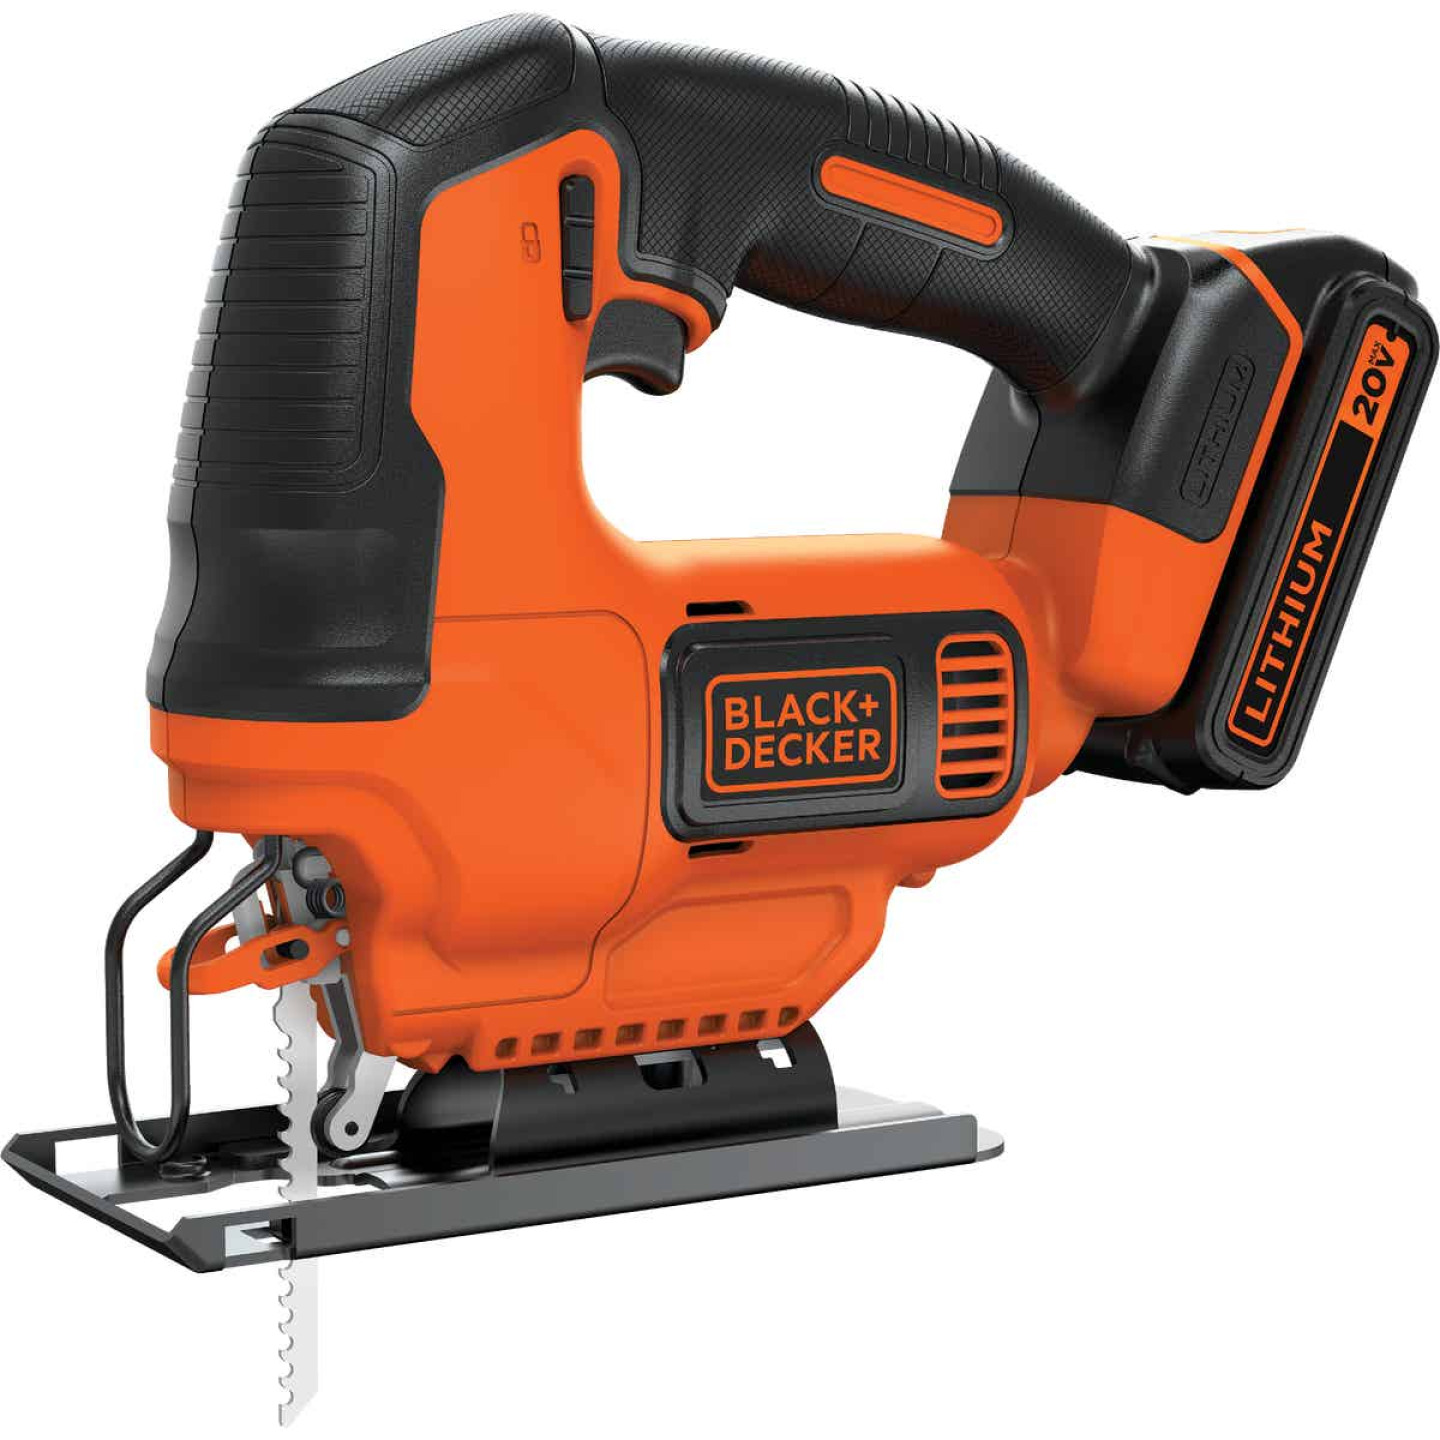 Black & Decker 20 Volt MAX Lithium-Ion 1.5 Ah Cordless Jig Saw Kit Image 1